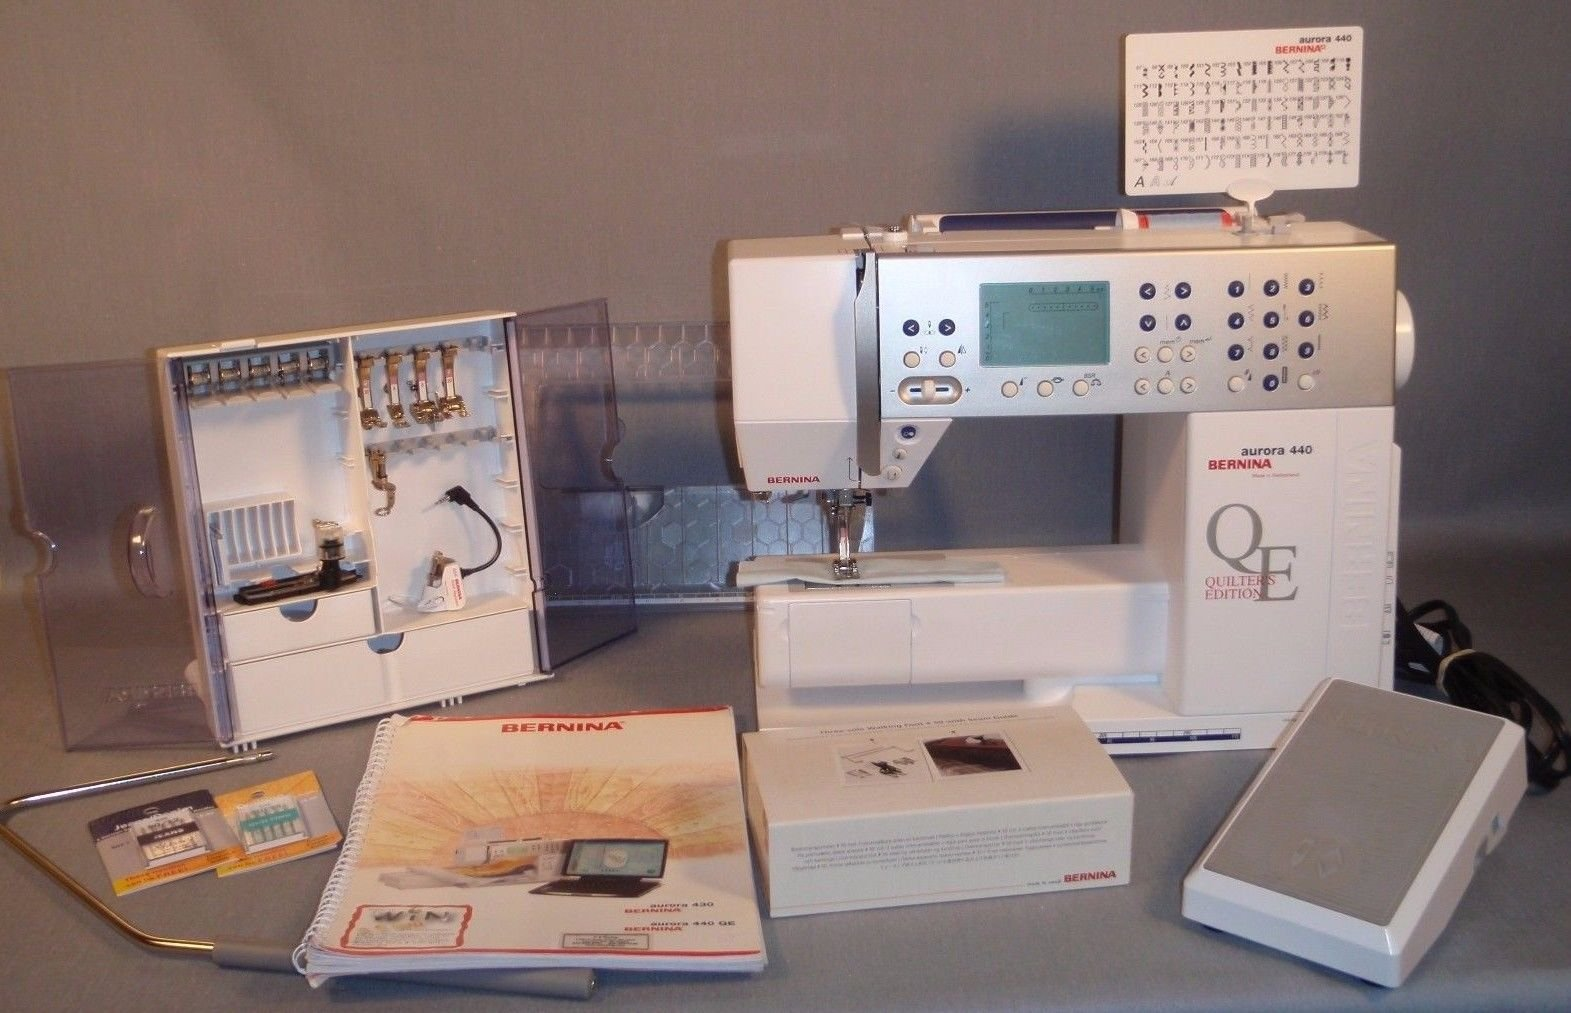 sewing pfaff expression the machine machines quilting new htm by quilt